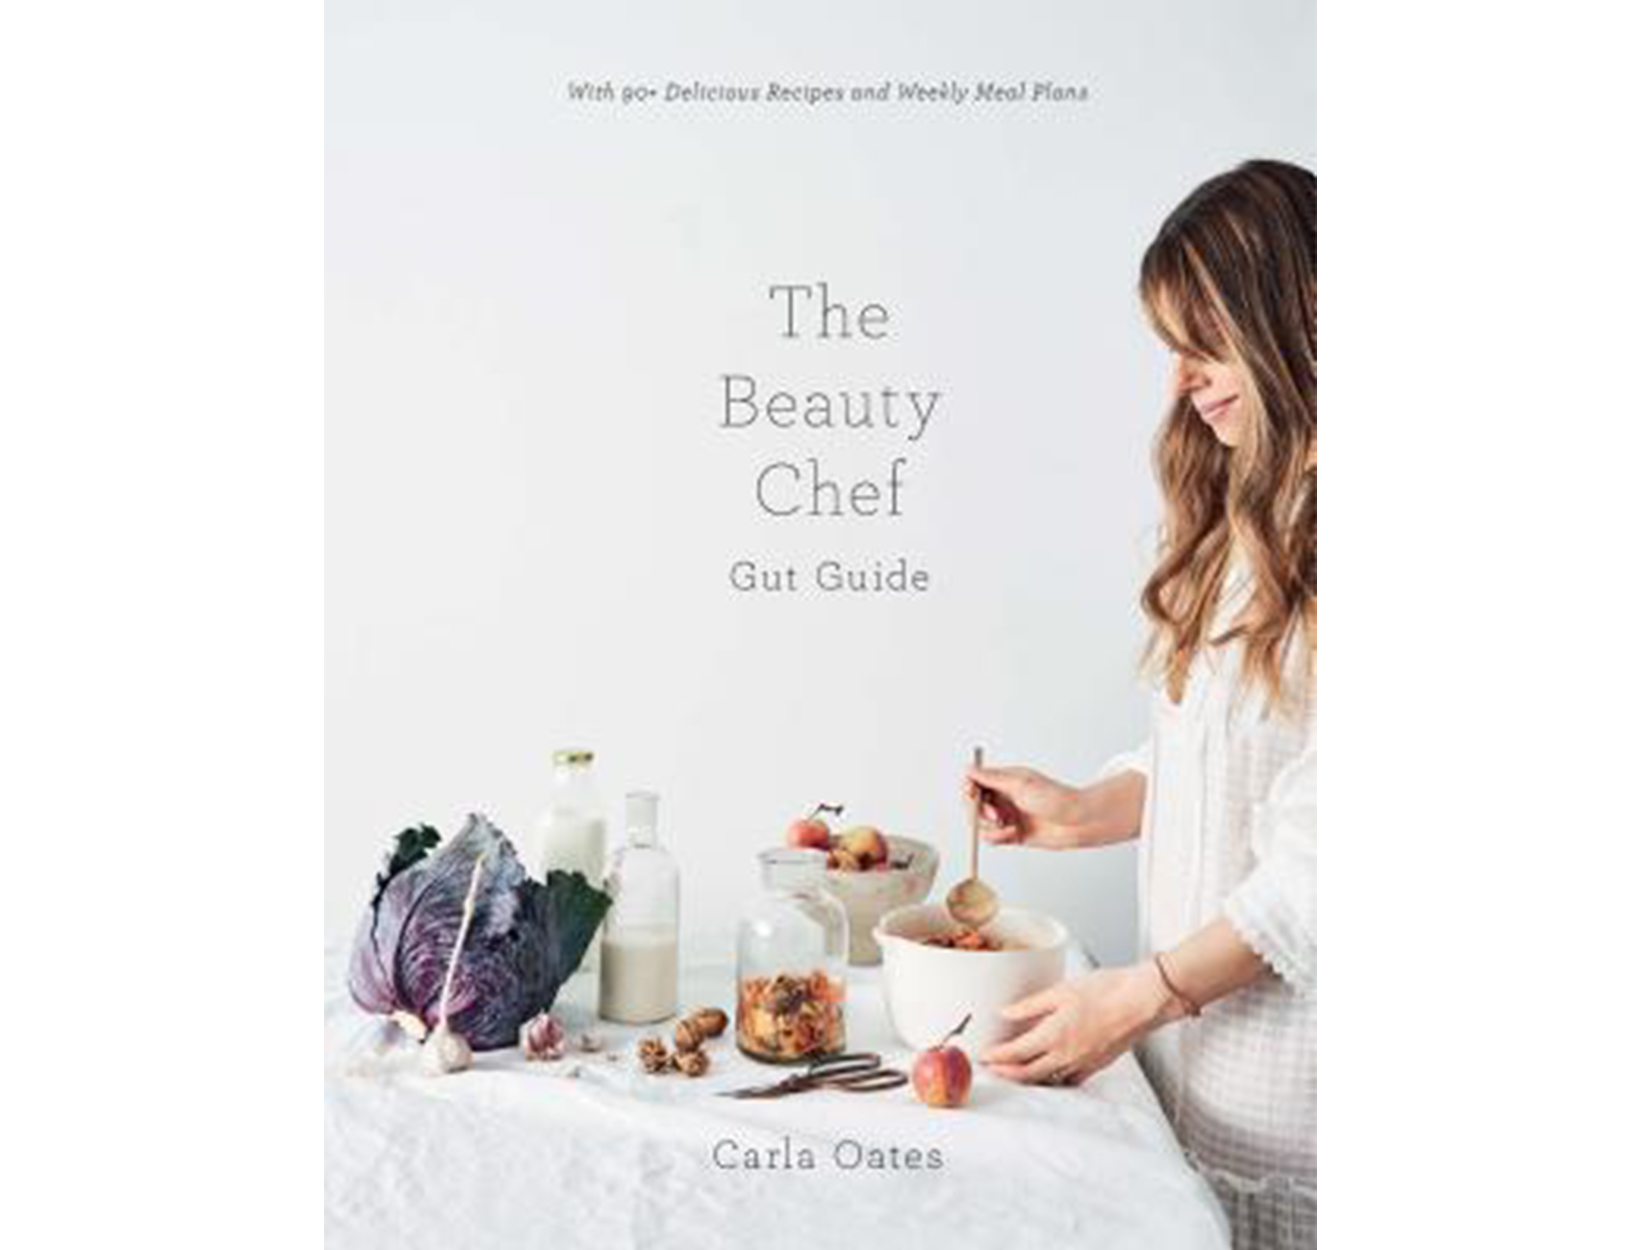 <em>The Beauty Chef Gut Guide</em> by Carla Oates